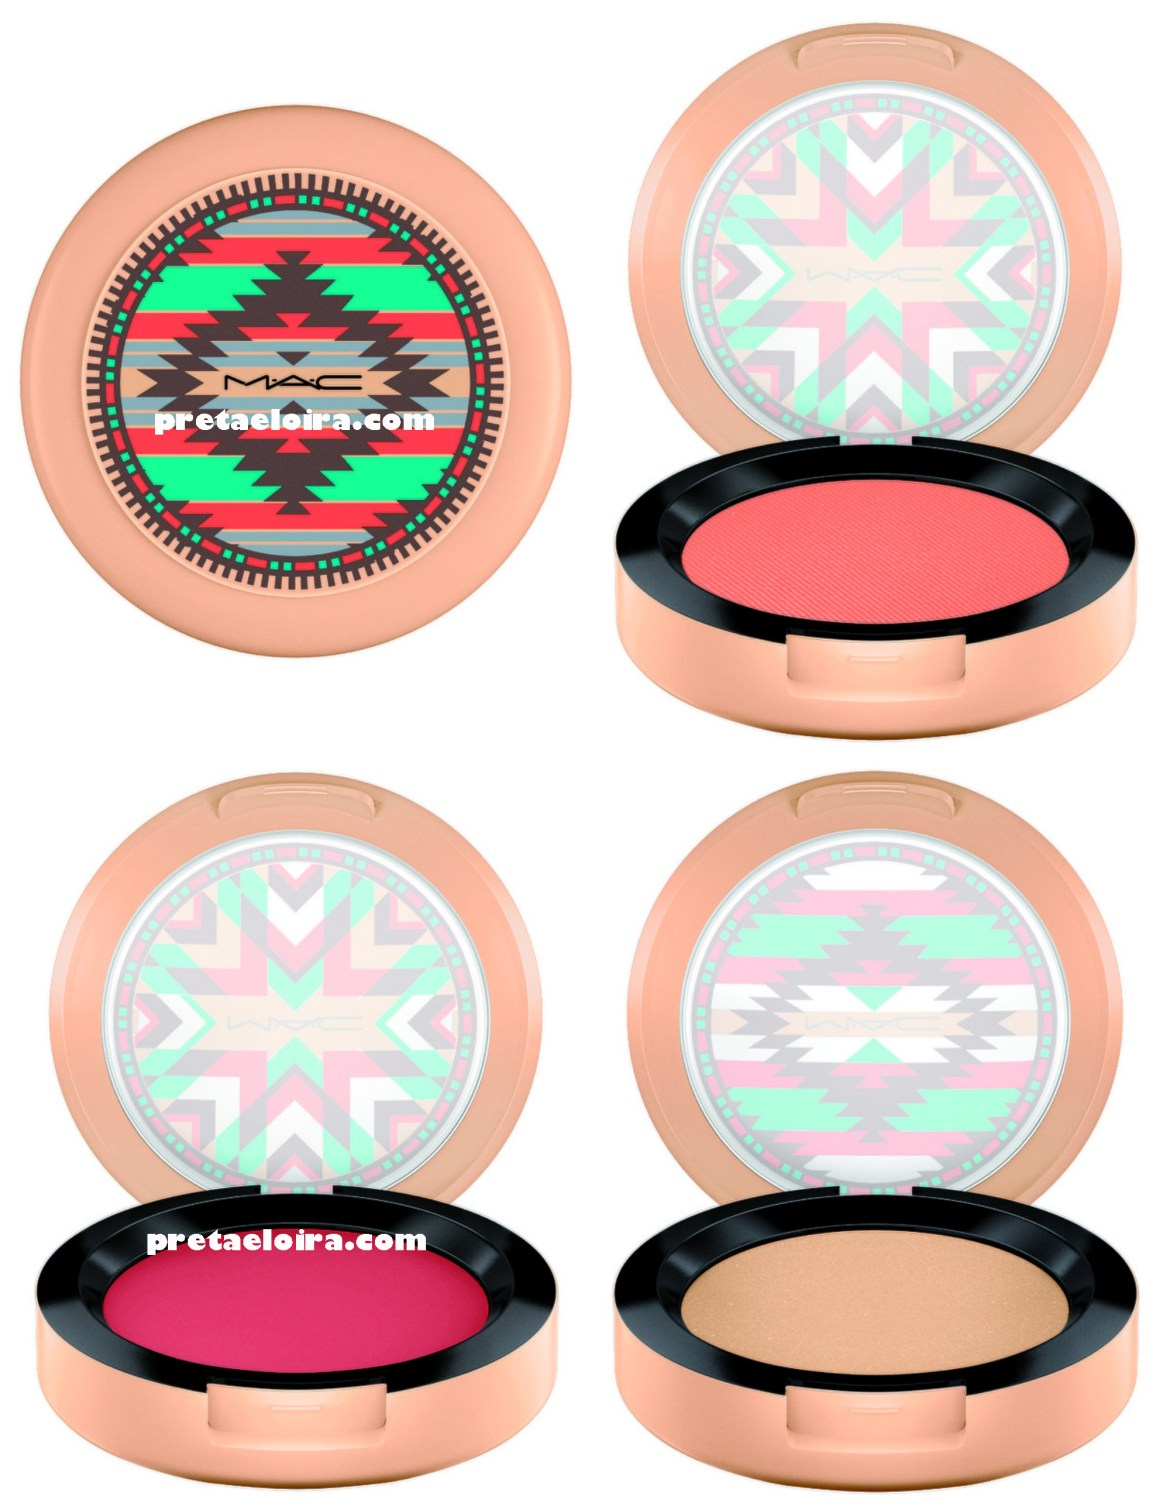 MAC_Vibe-Tribe_pretaeloira_6 copia